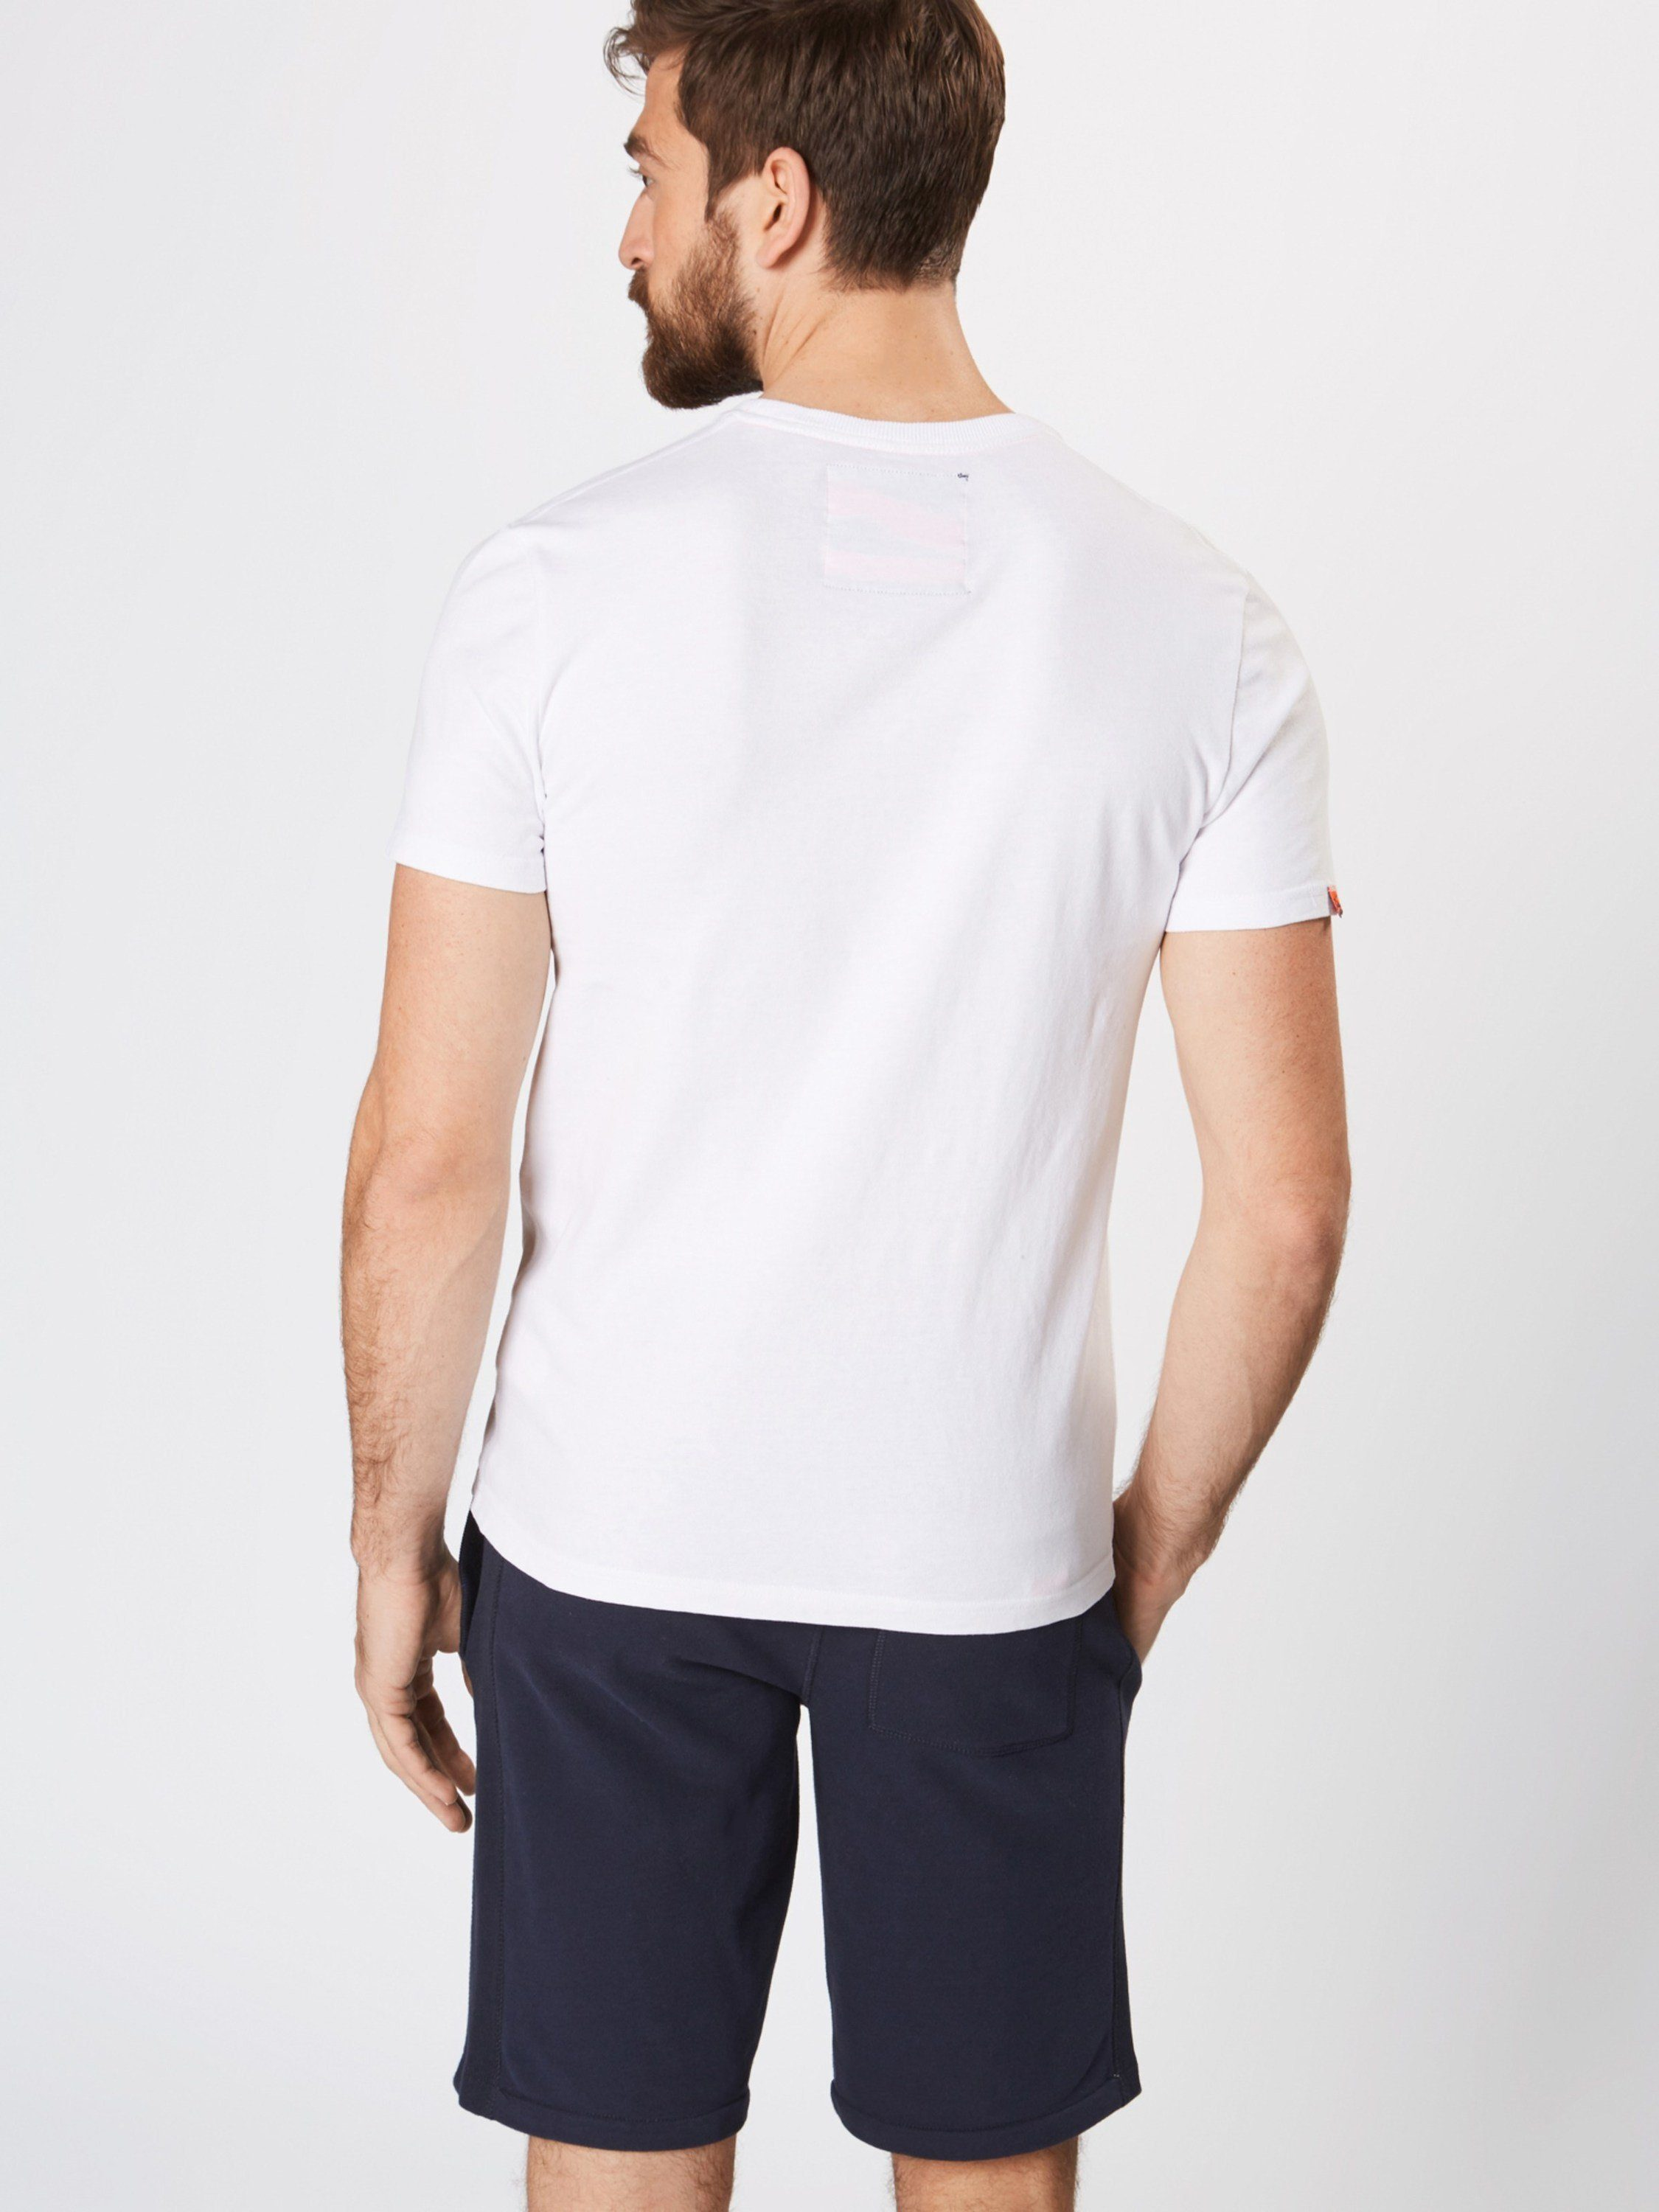 Tee« Print Kaufen shirt Classic »heritage Superdry 8nPX0kNOw